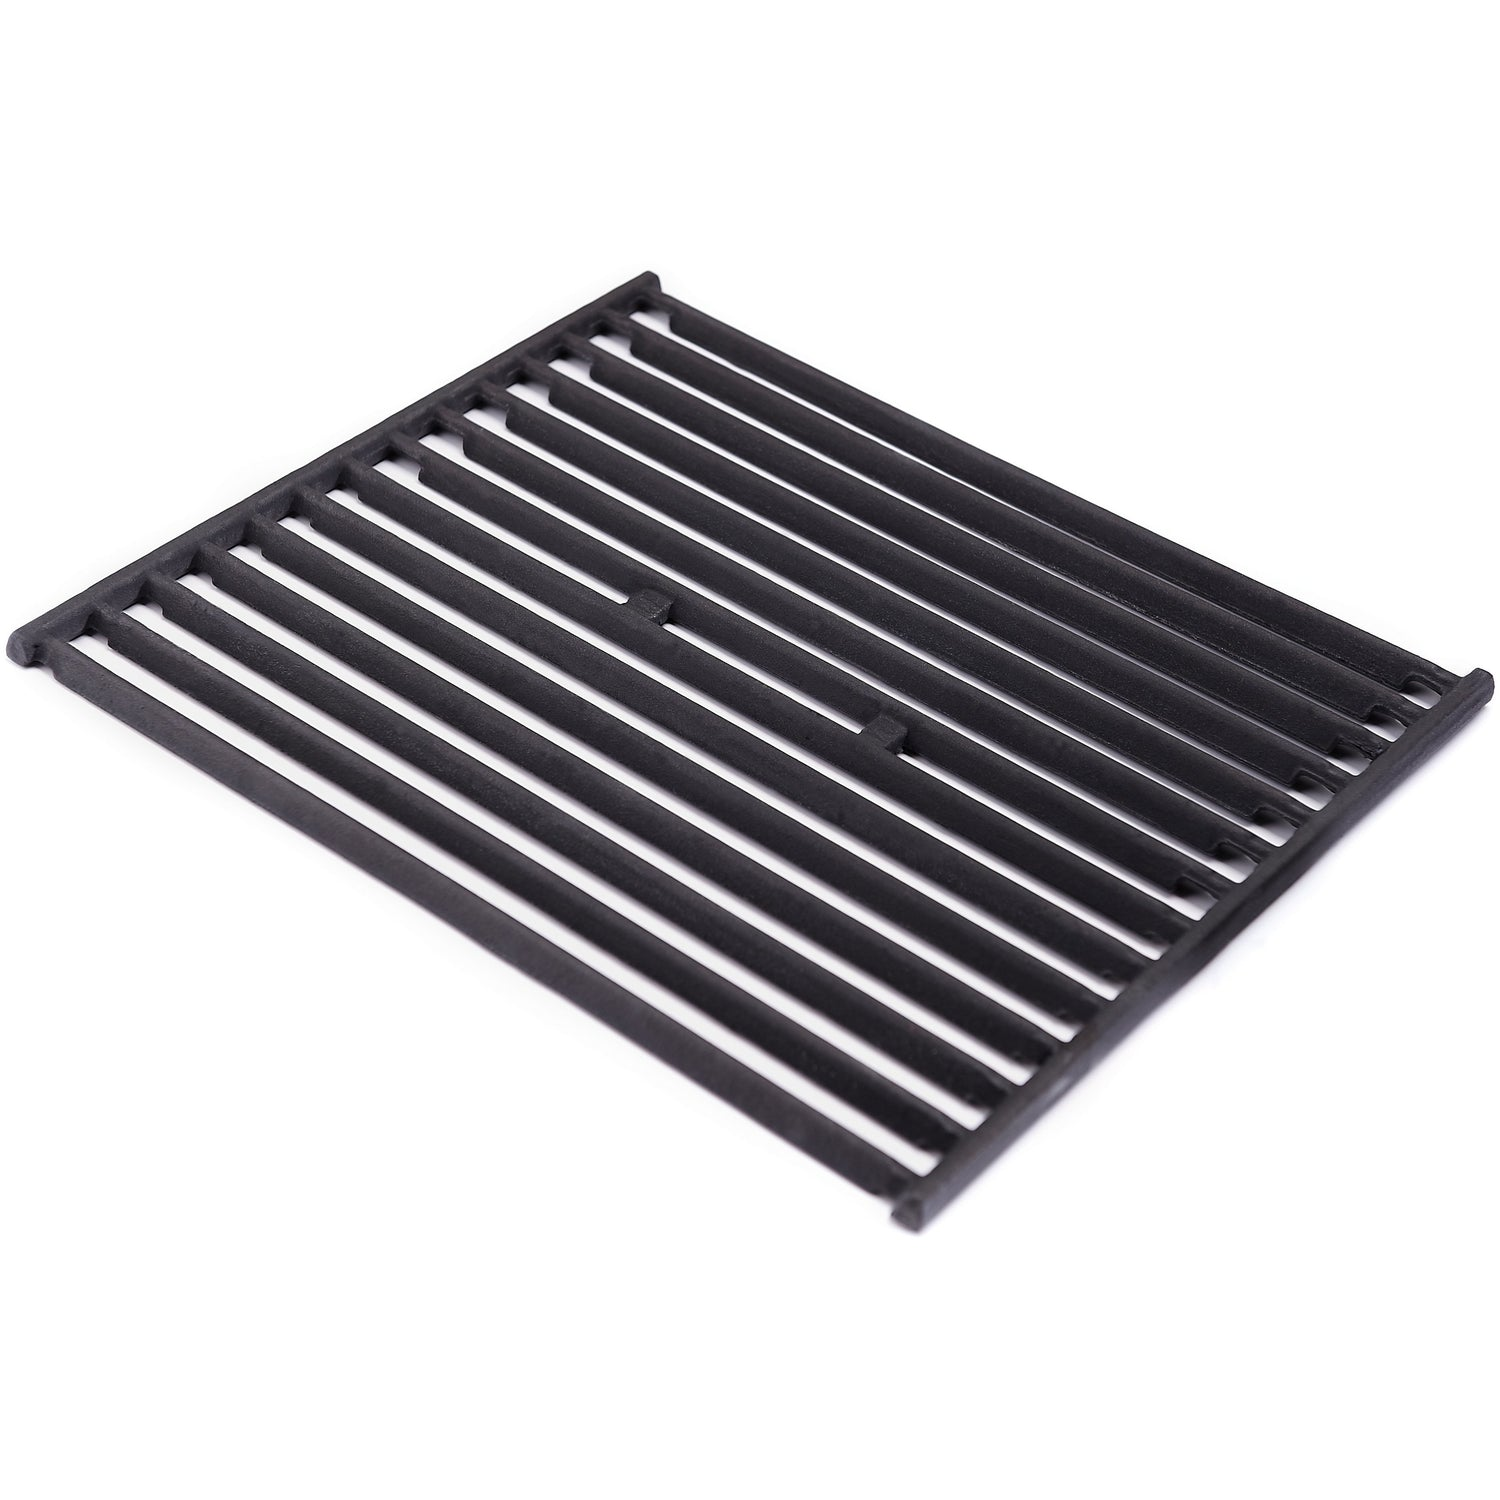 Broil King 15' X 12.75' Cast Iron Cooking Grid 2pc.